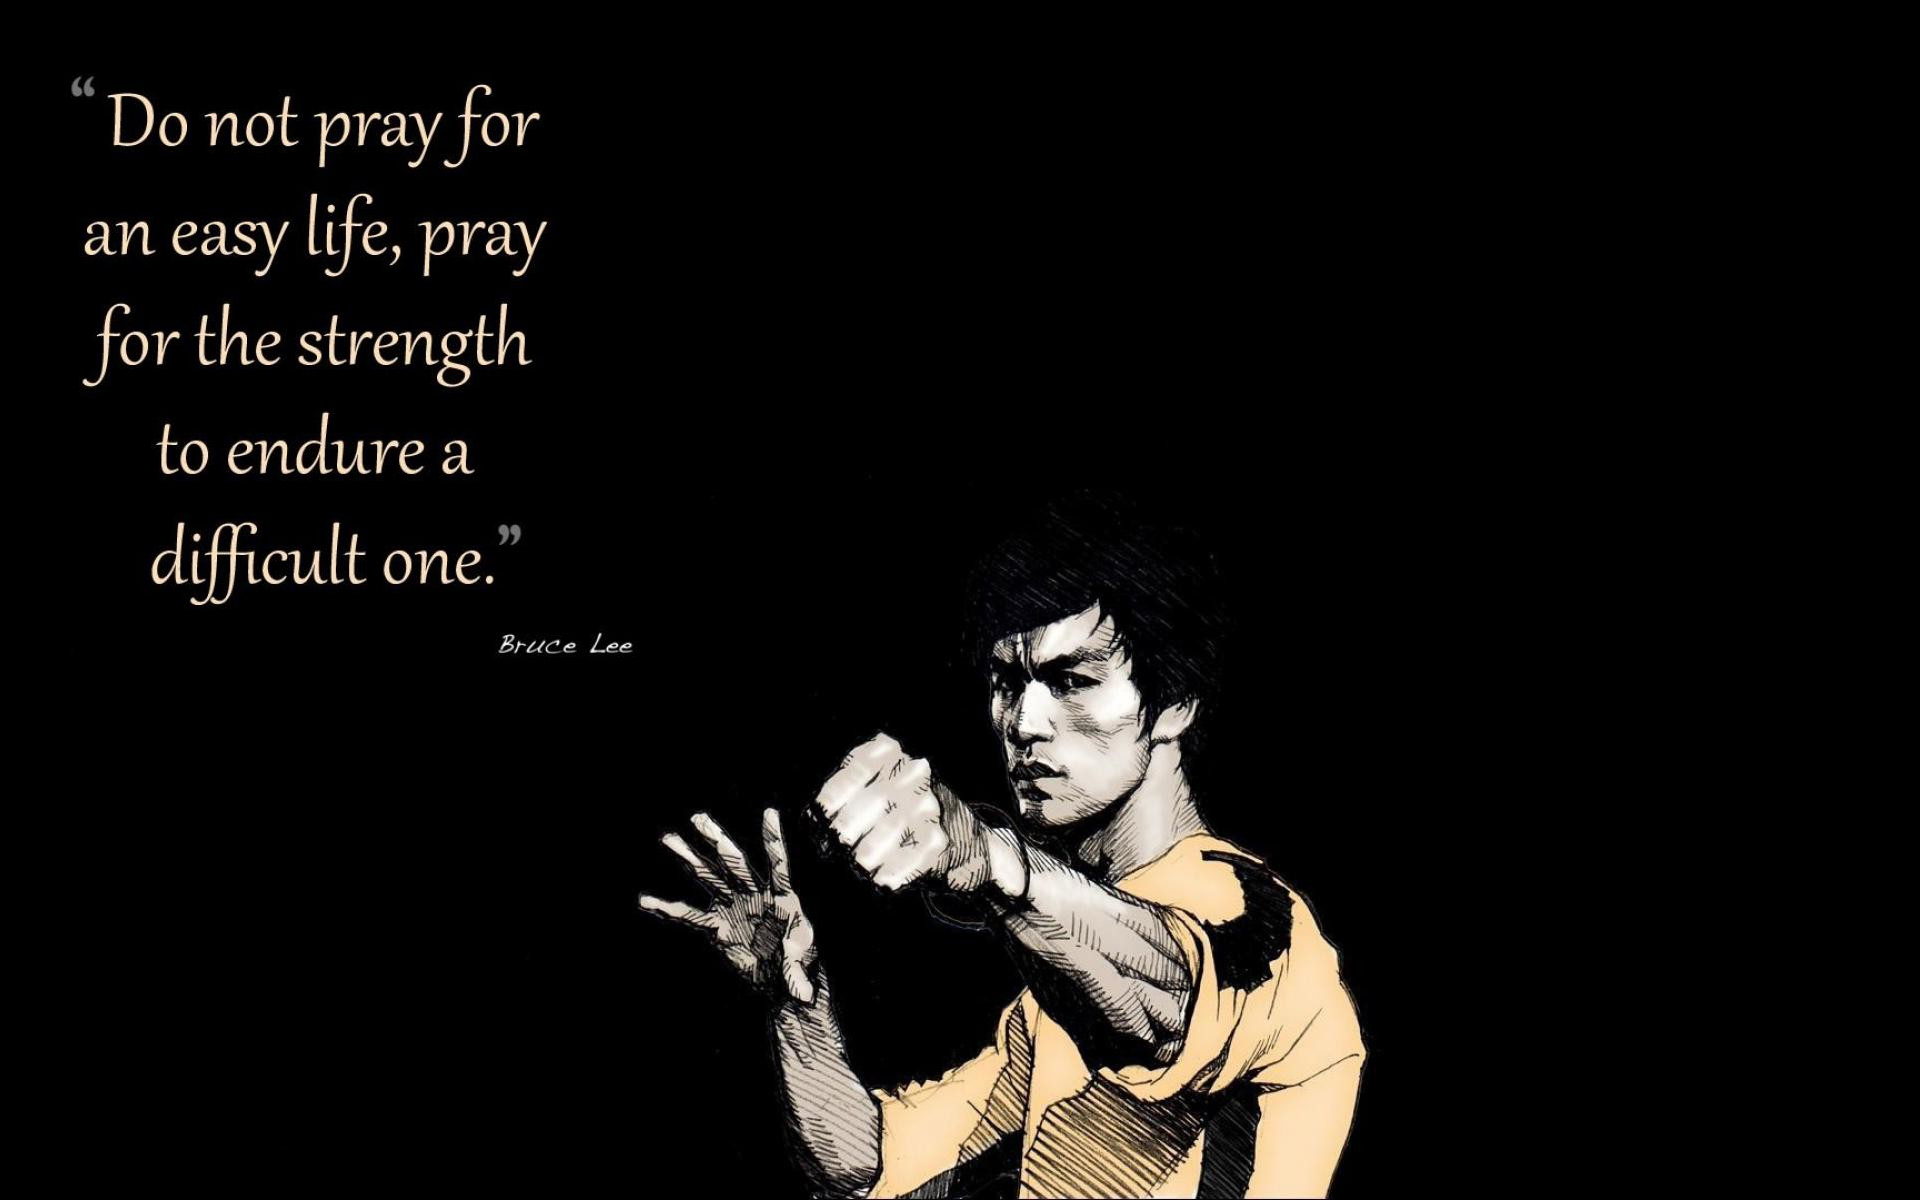 Bruce Lee Quotes Facebook Cover Wallpaper Do Not Pray For Easy Life 1955558 Hd Wallpaper Backgrounds Download